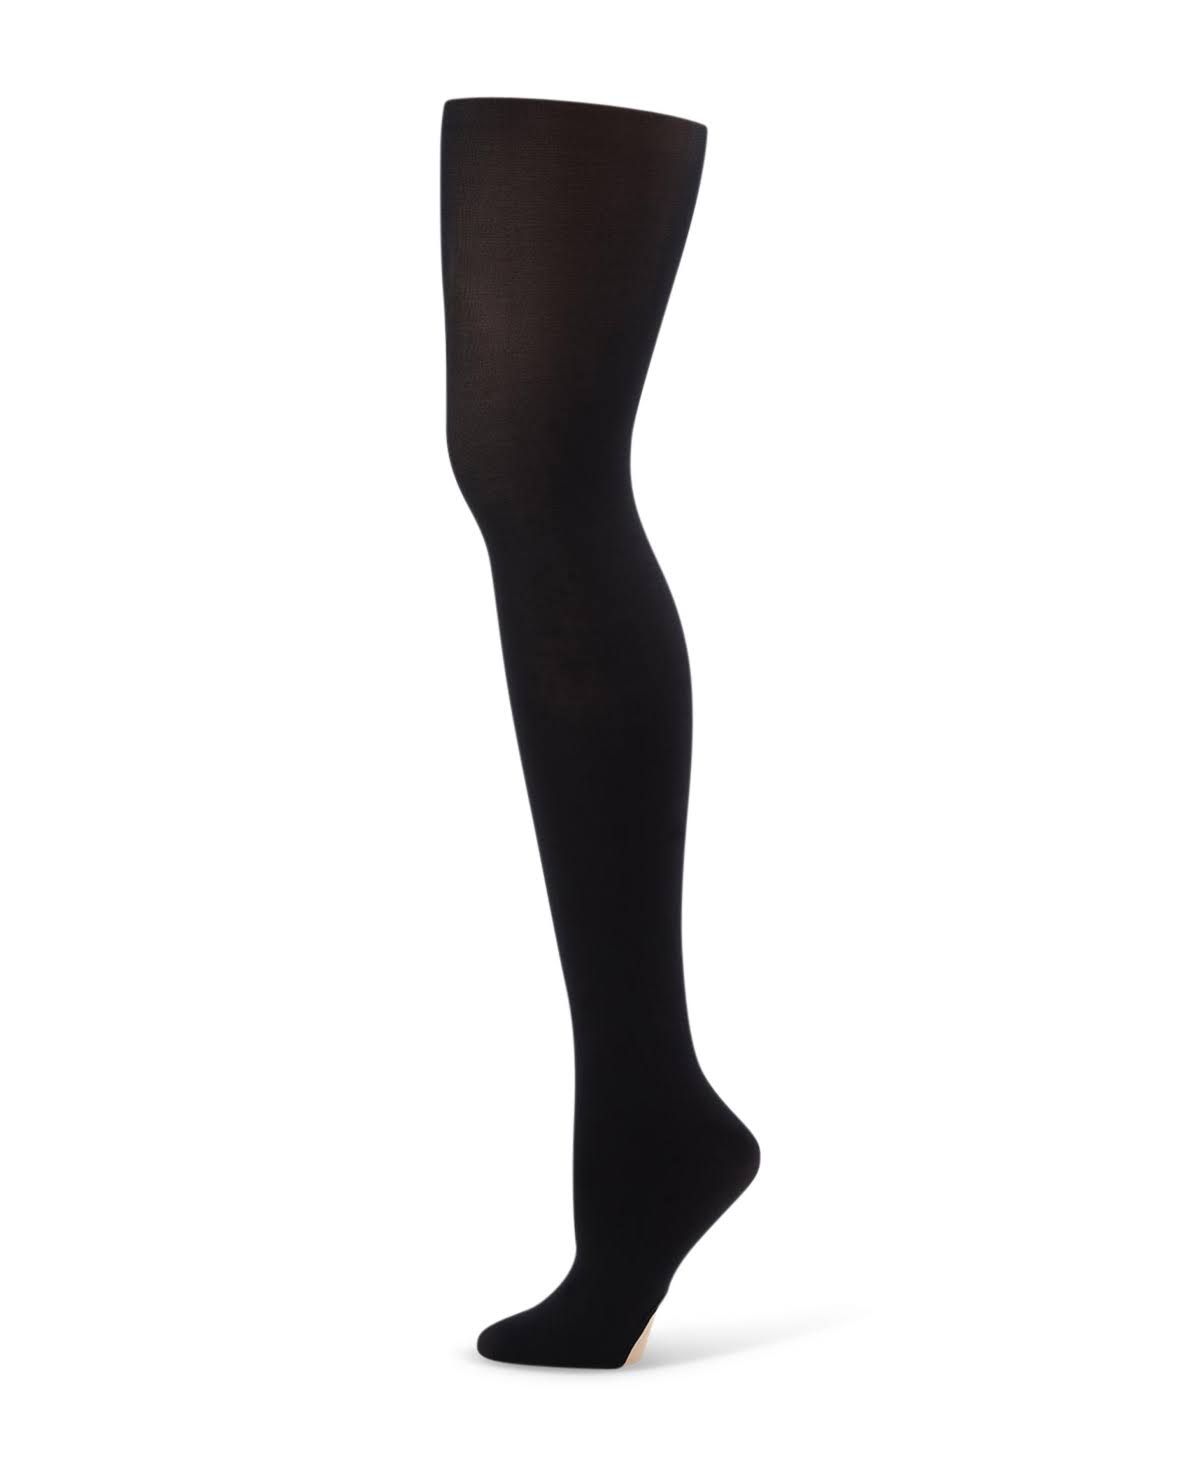 Capezio Women's Capezio Ultra Soft Transition Tights - Black, Large-XLarge